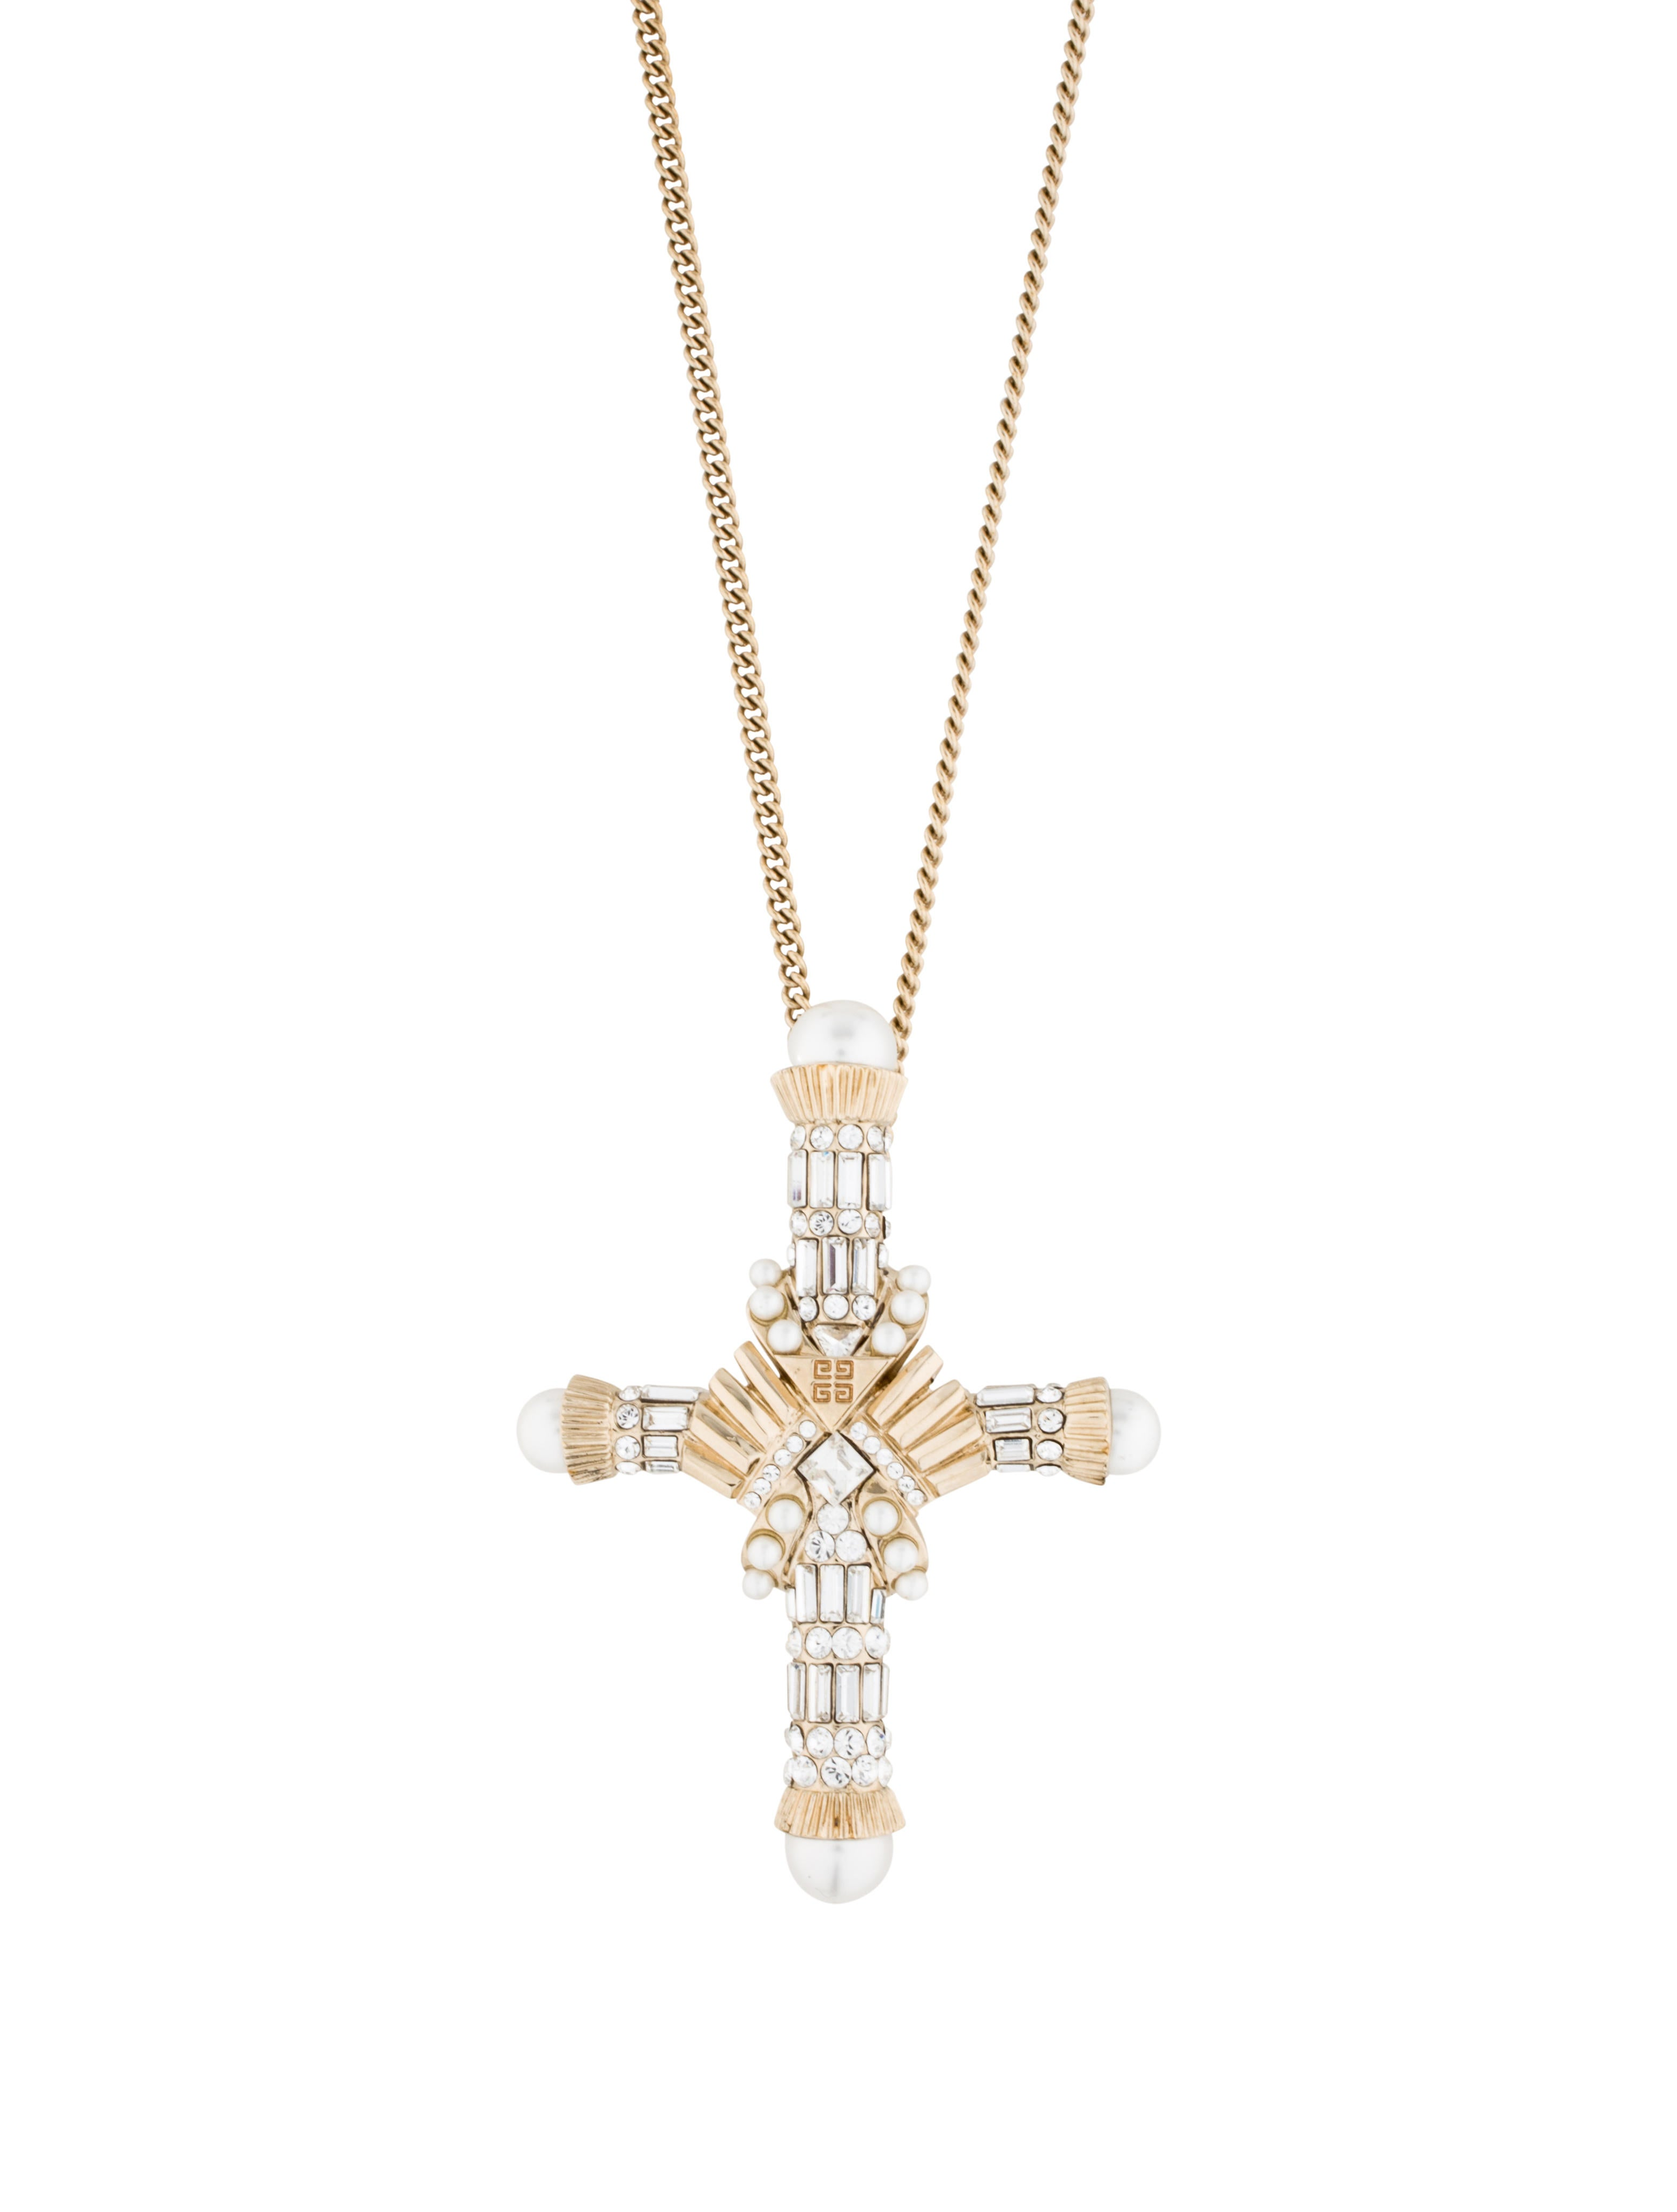 givenchy embellished cross pendant necklace necklaces